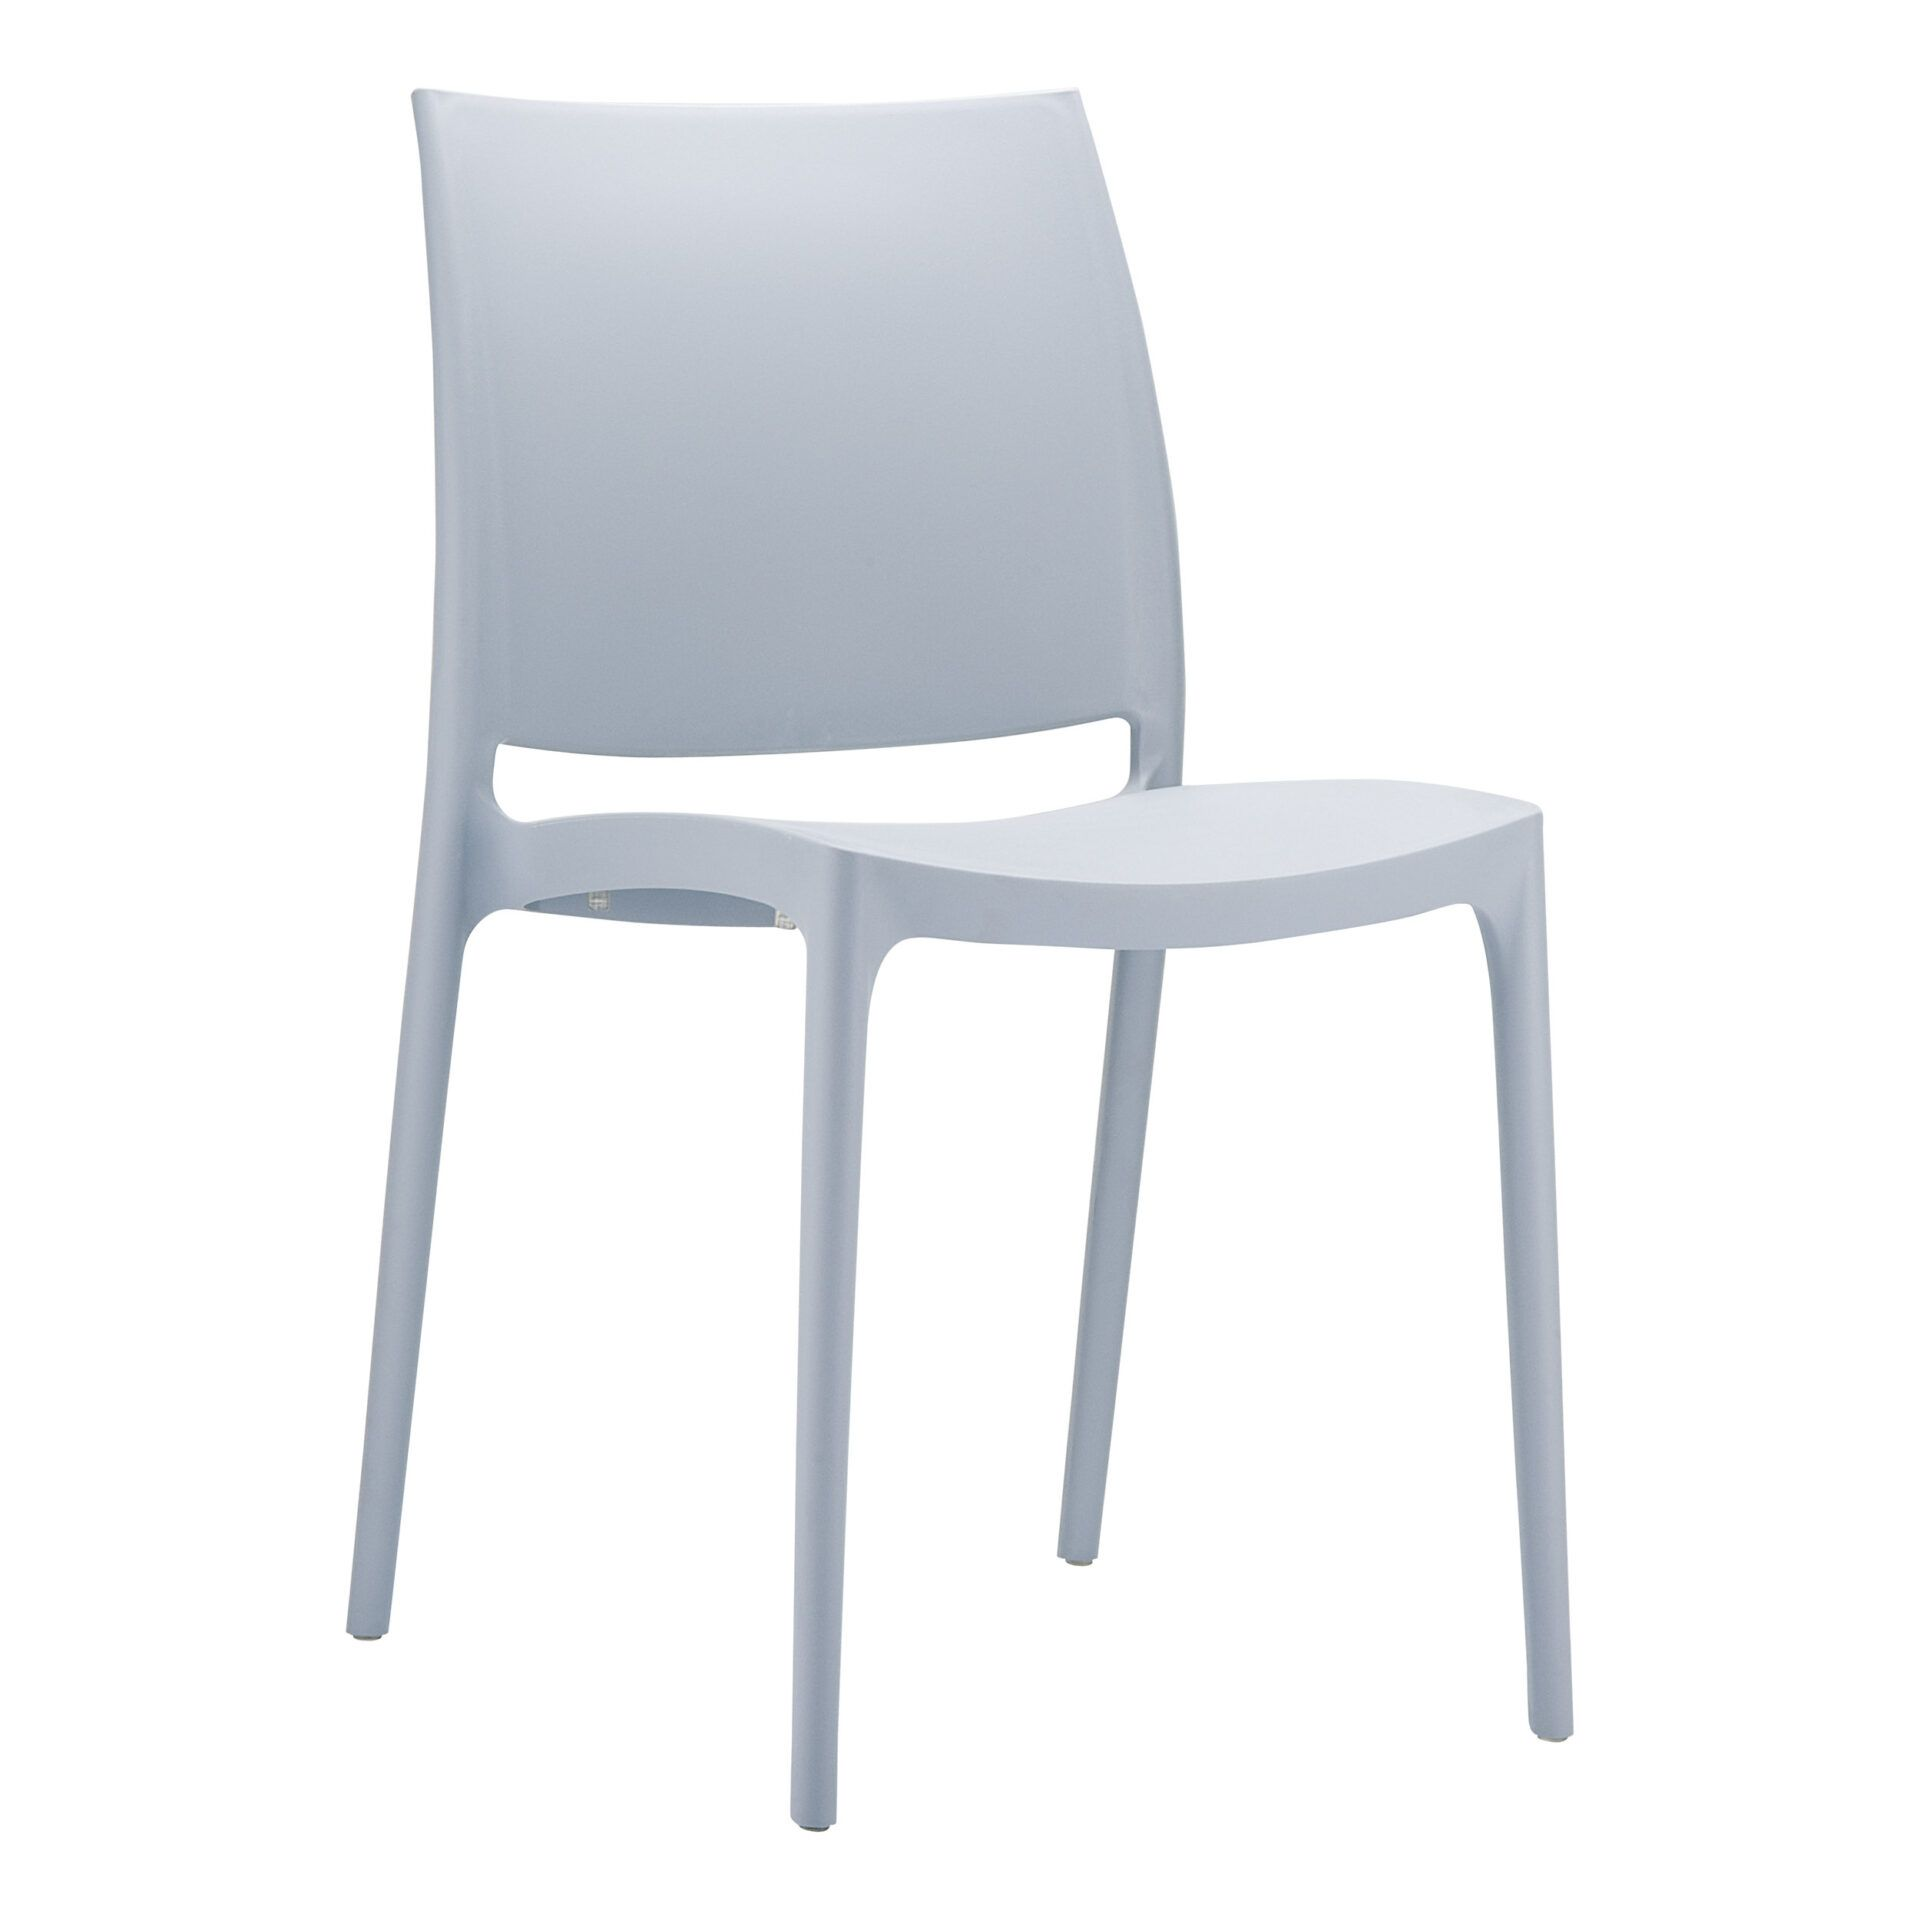 outdoor dining maya chair grey front side